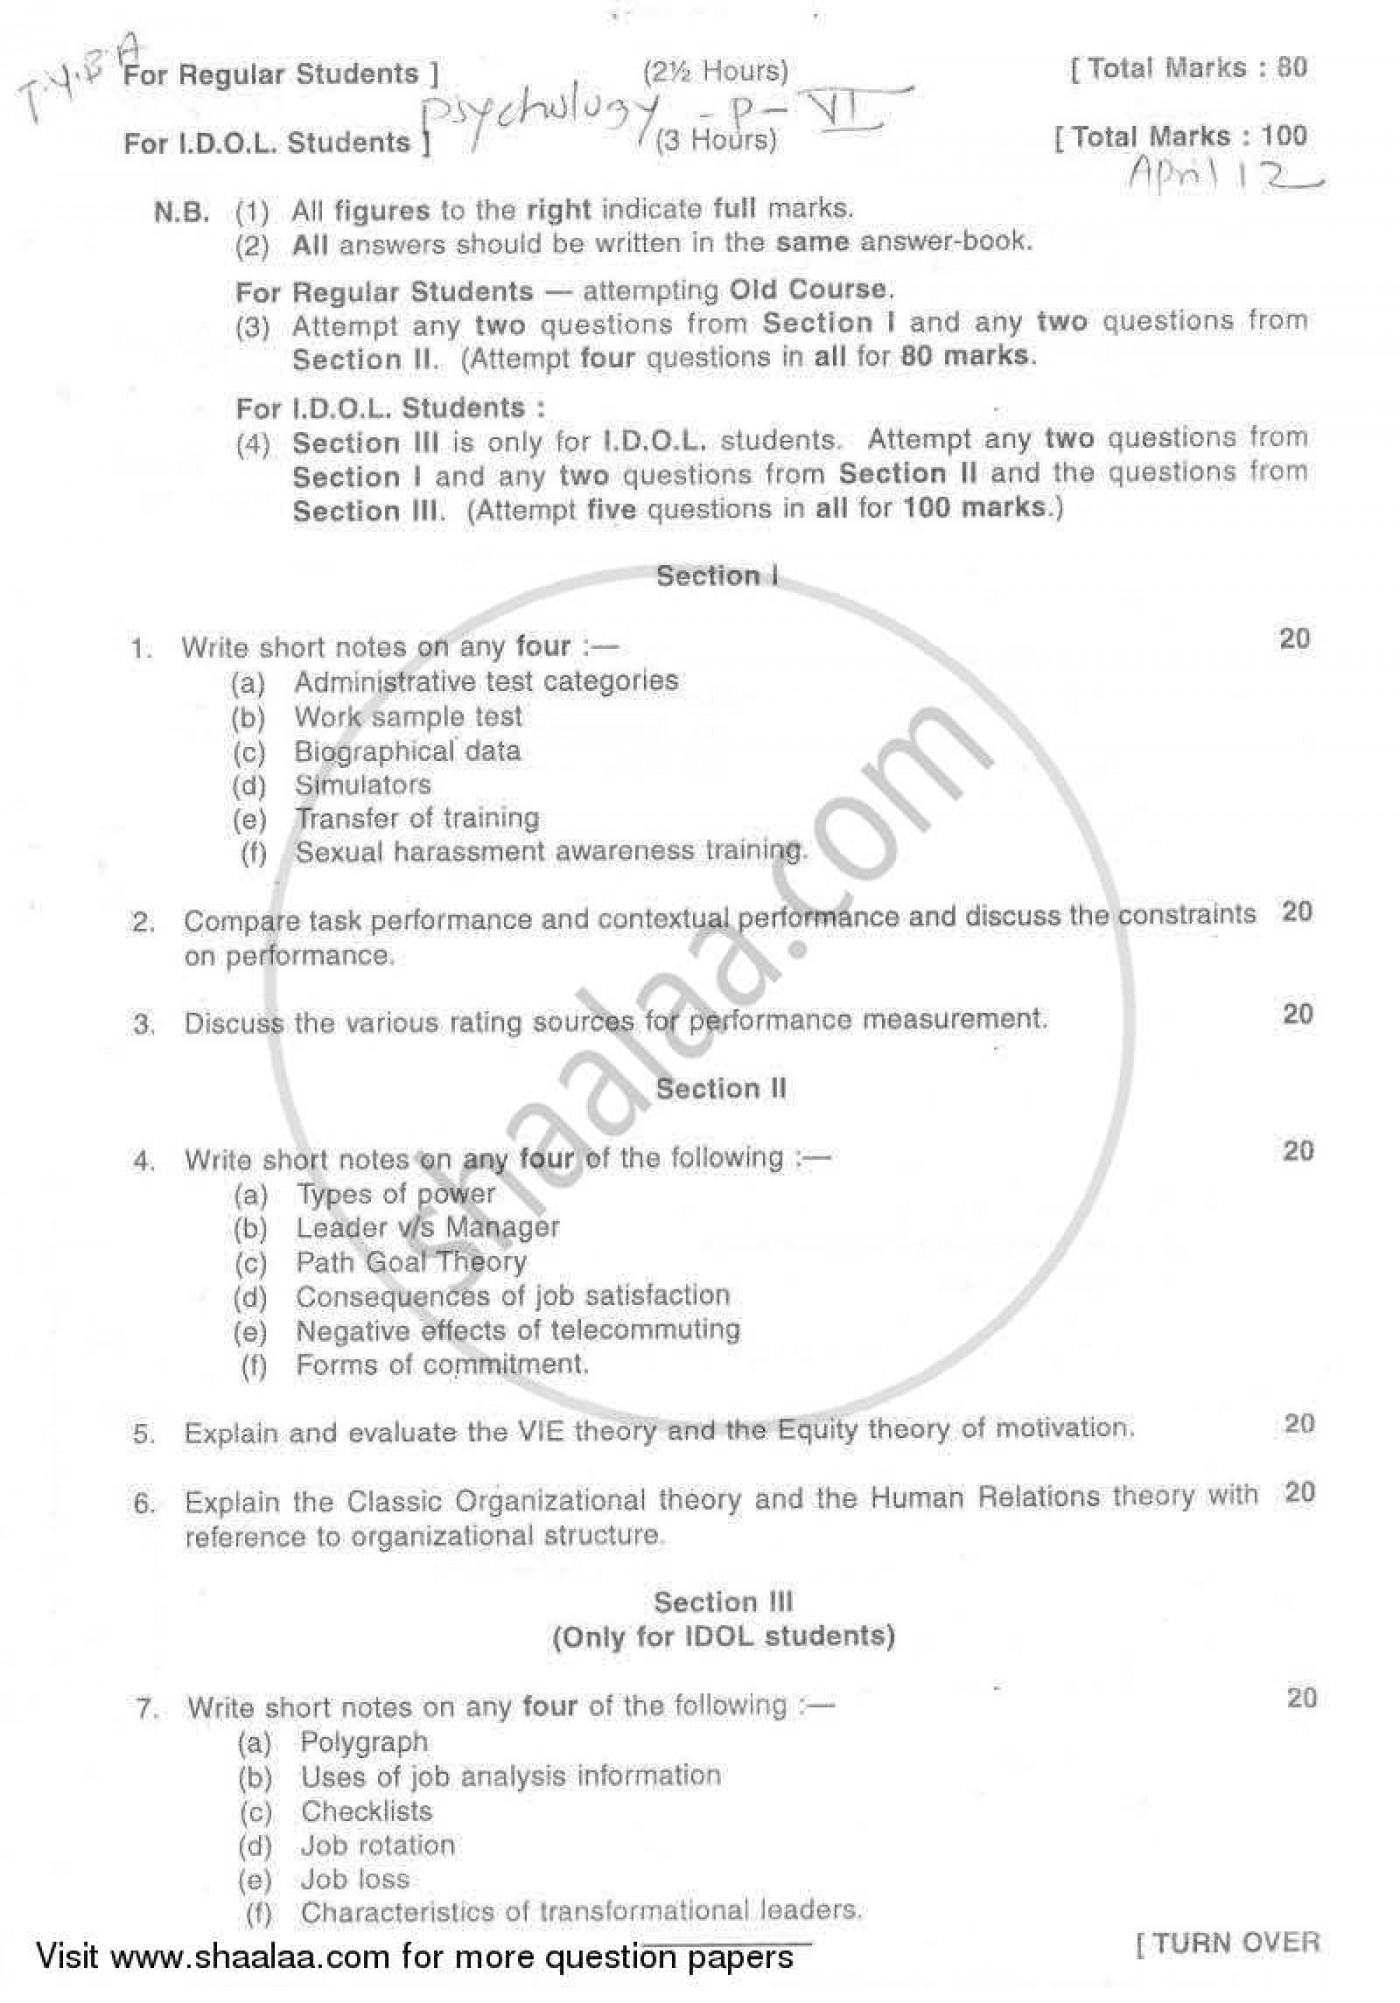 017 Psychologyearch Paper On Dreams University Of Mumbai Bachelor Industrial Organizational T Y Yearly Pattern Semester Tyba 2011 29a03925dfc524f2aa4cb10e4d3da996a Singular Psychology Research Topics Articles 1400